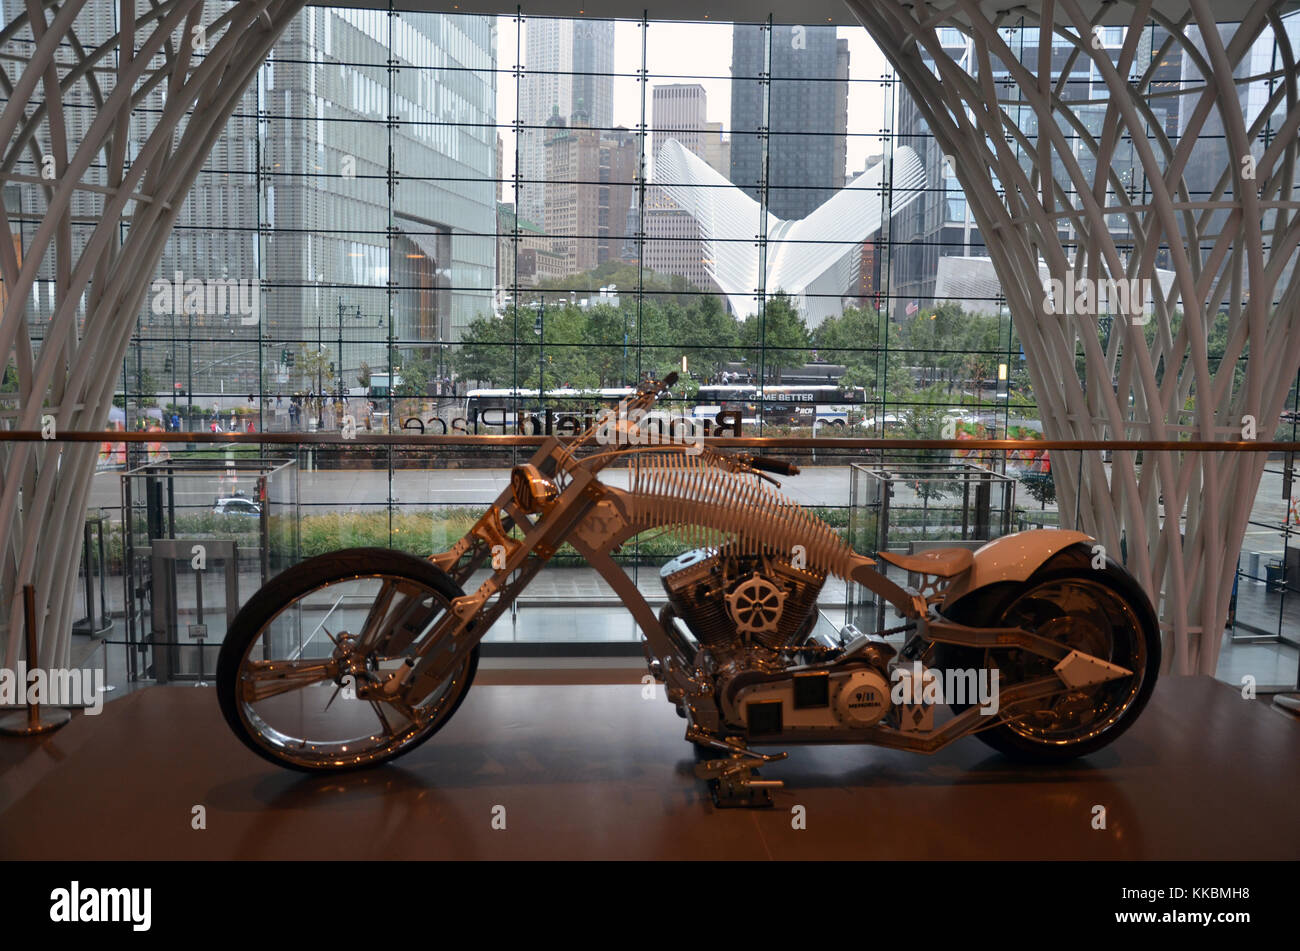 A 9/11 Memorial Chopper Is On Display At Brookfield Place, At The Top